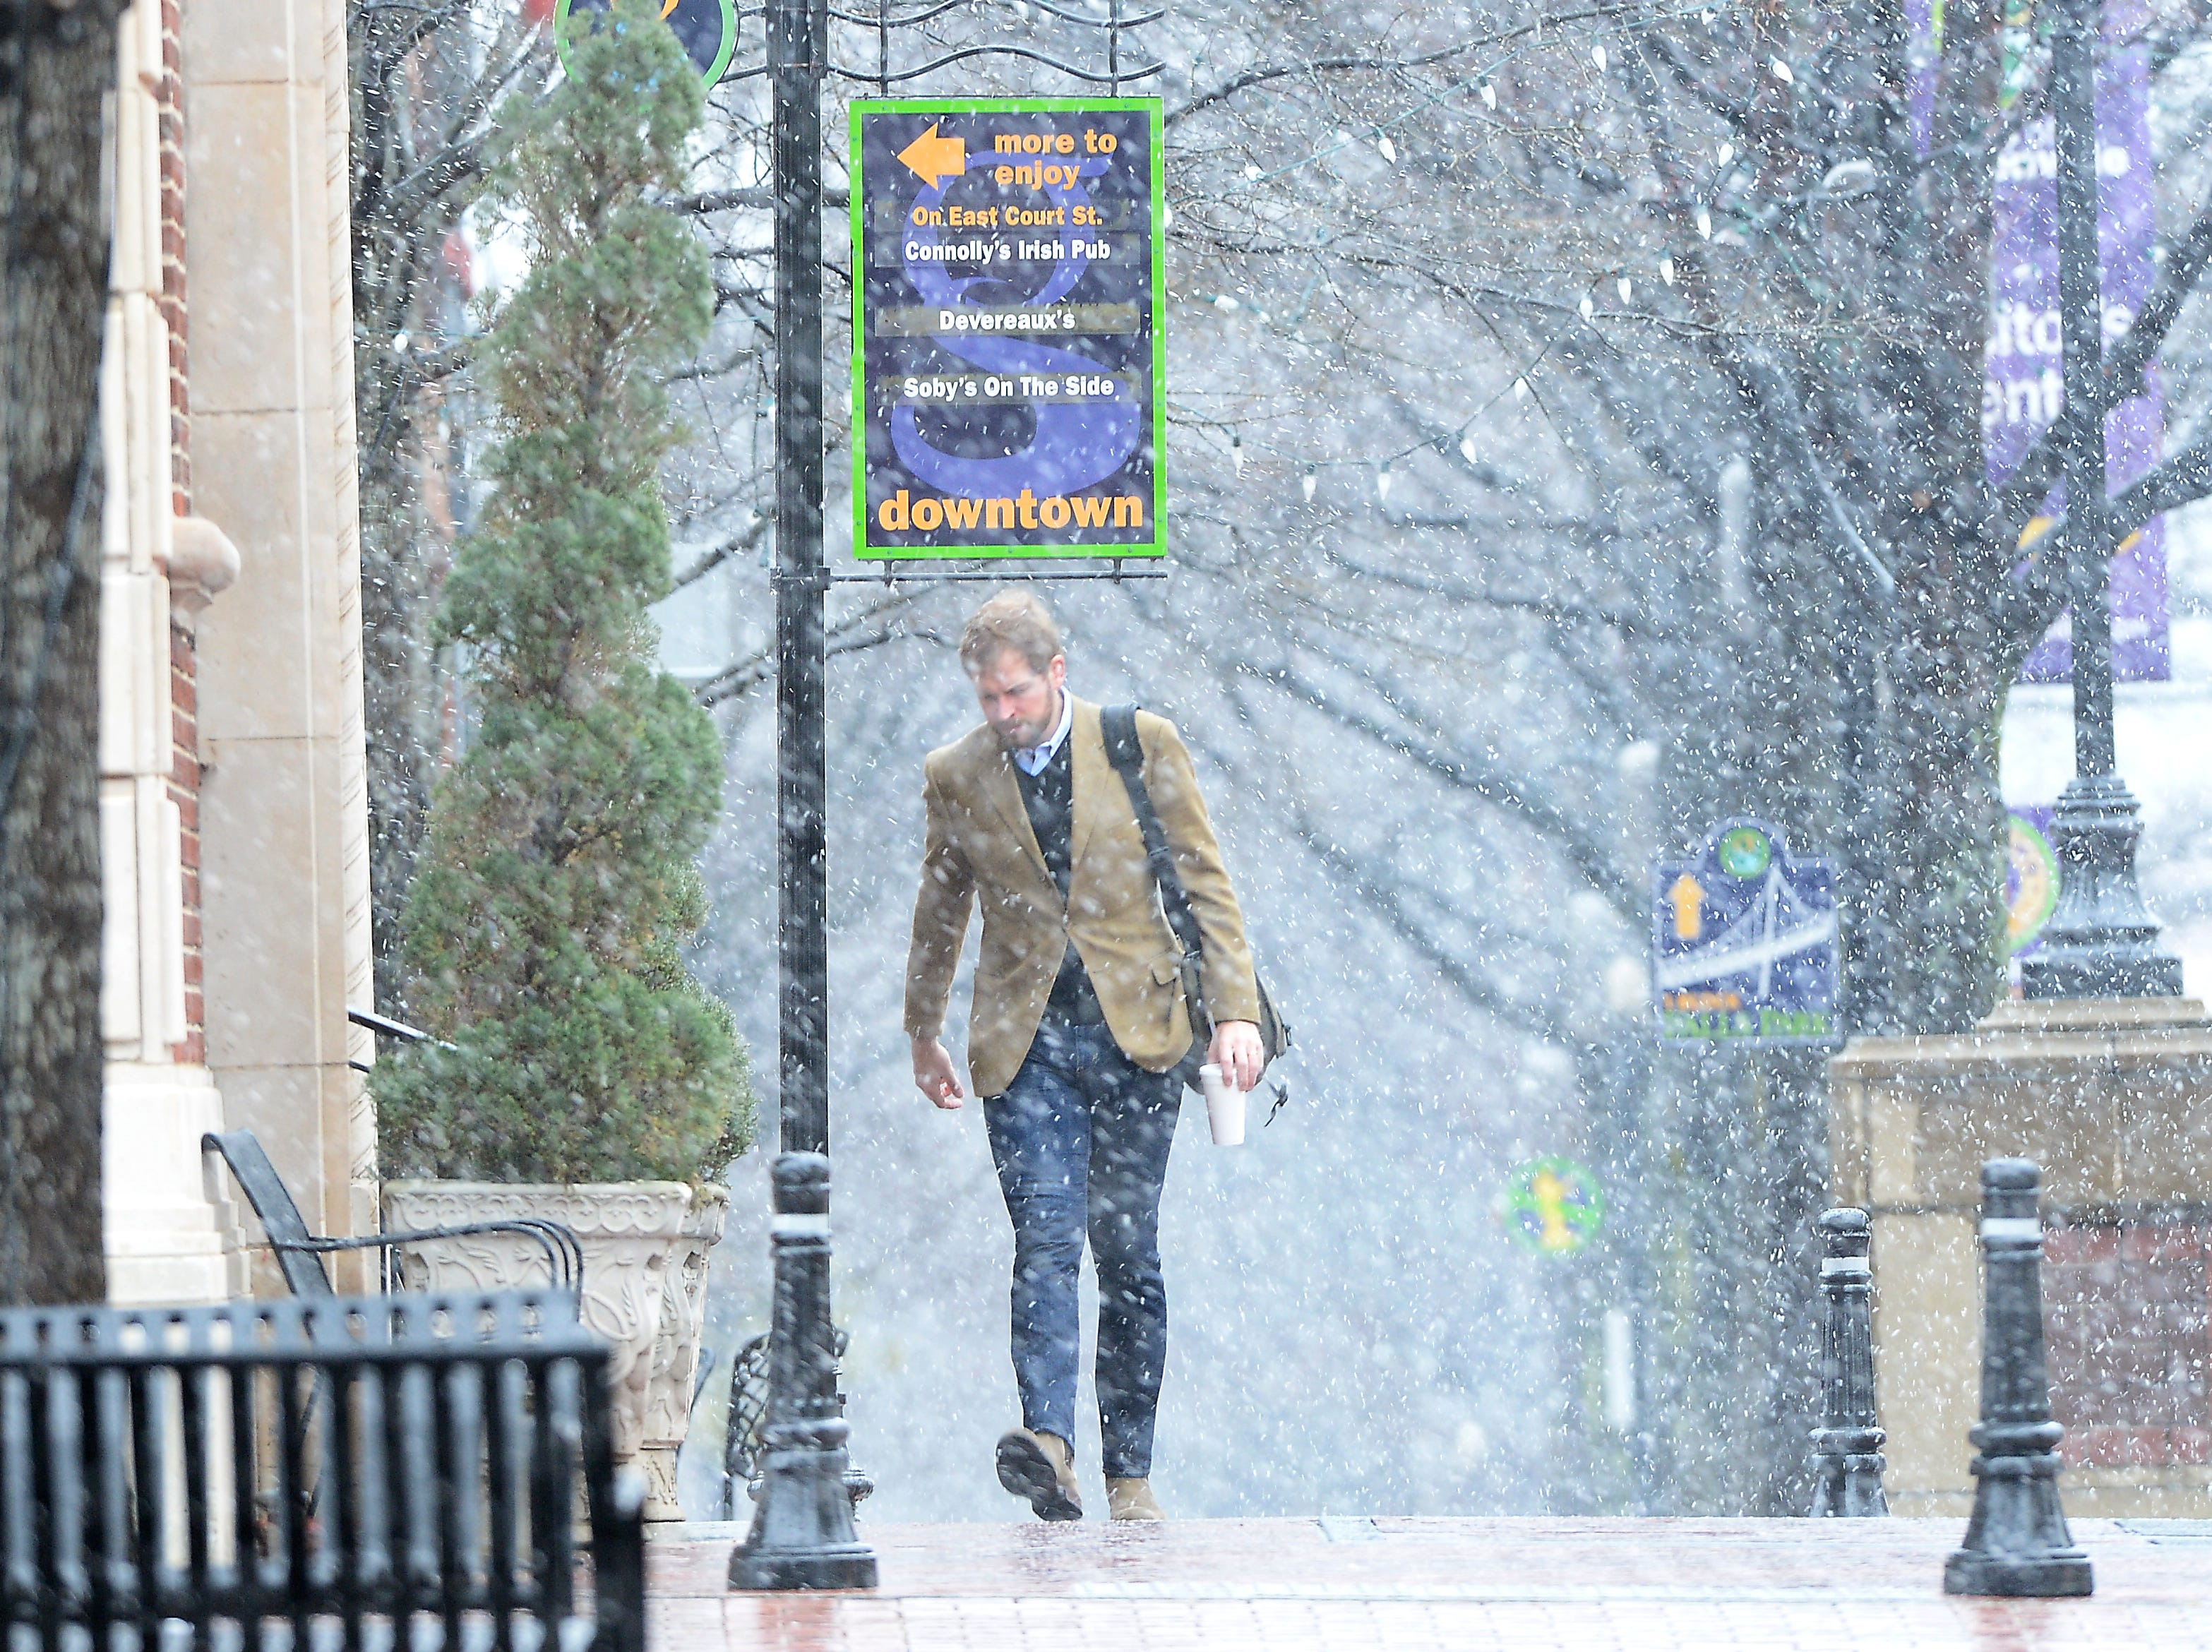 With snow fall picking up, Upstate residents make their way down Main Street on Tuesday, February 11, 2014.